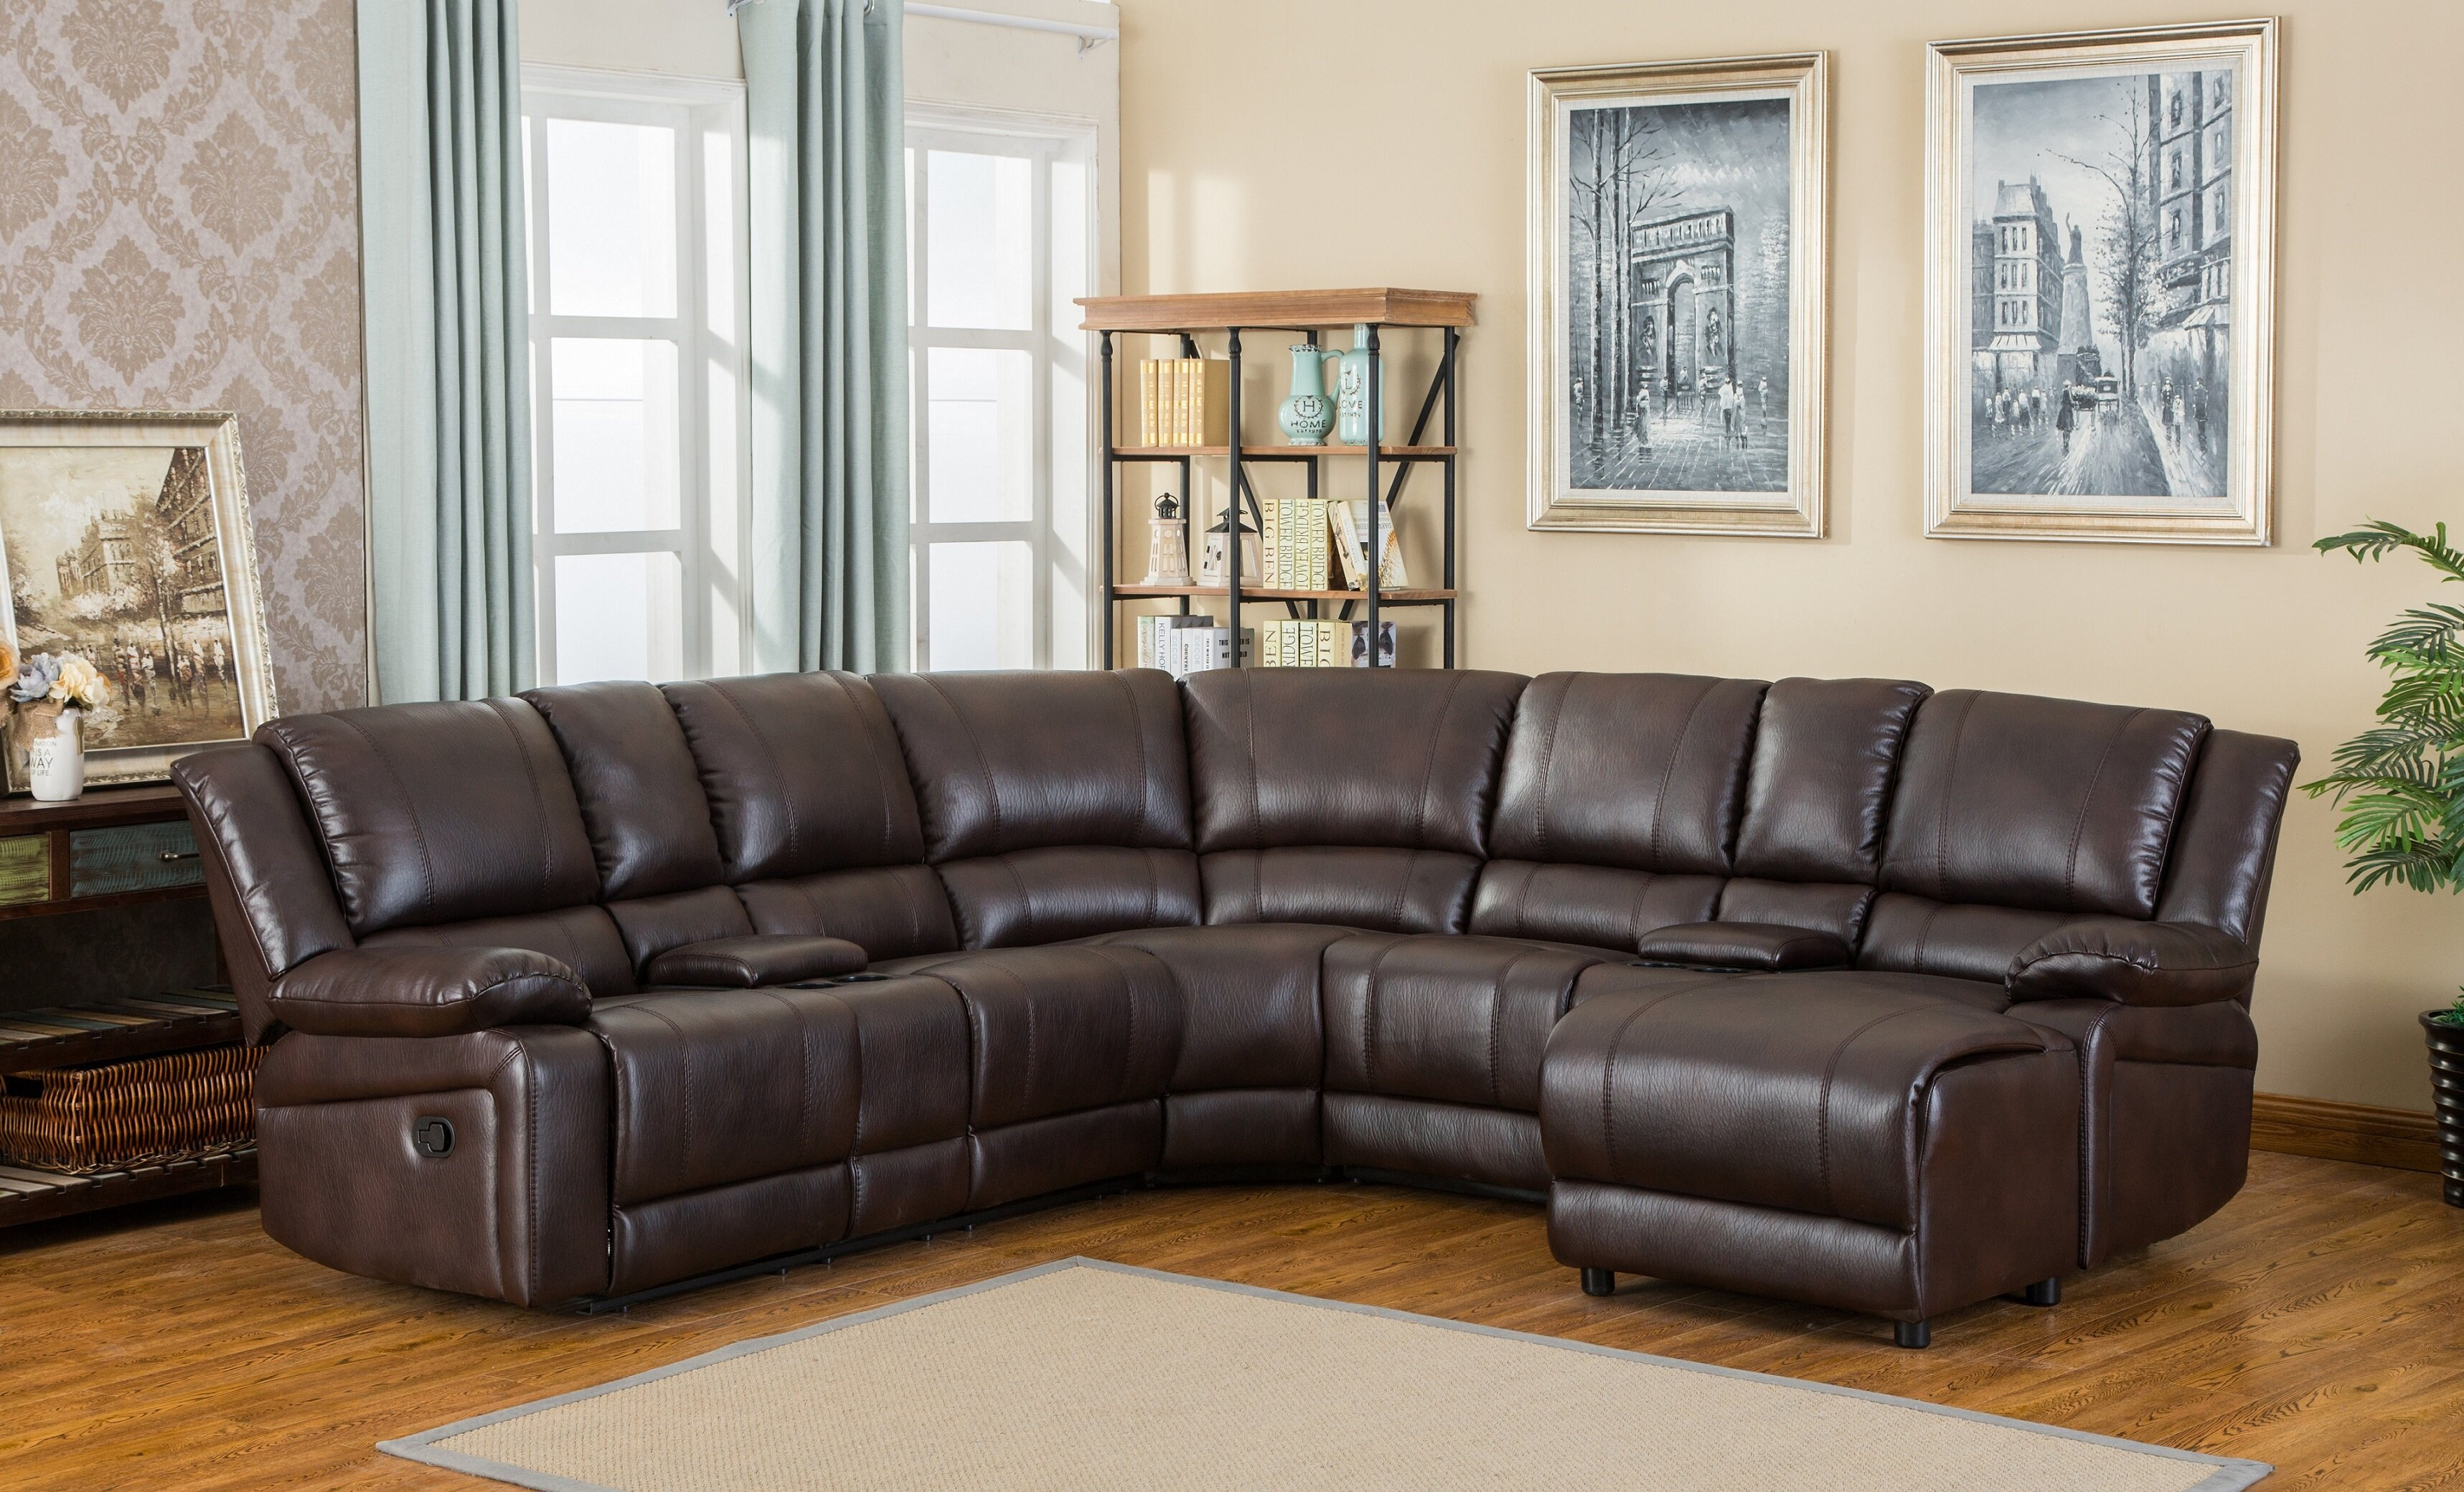 recliner back rec console products ashley press and signature design reclining by sectional item w chaise denali